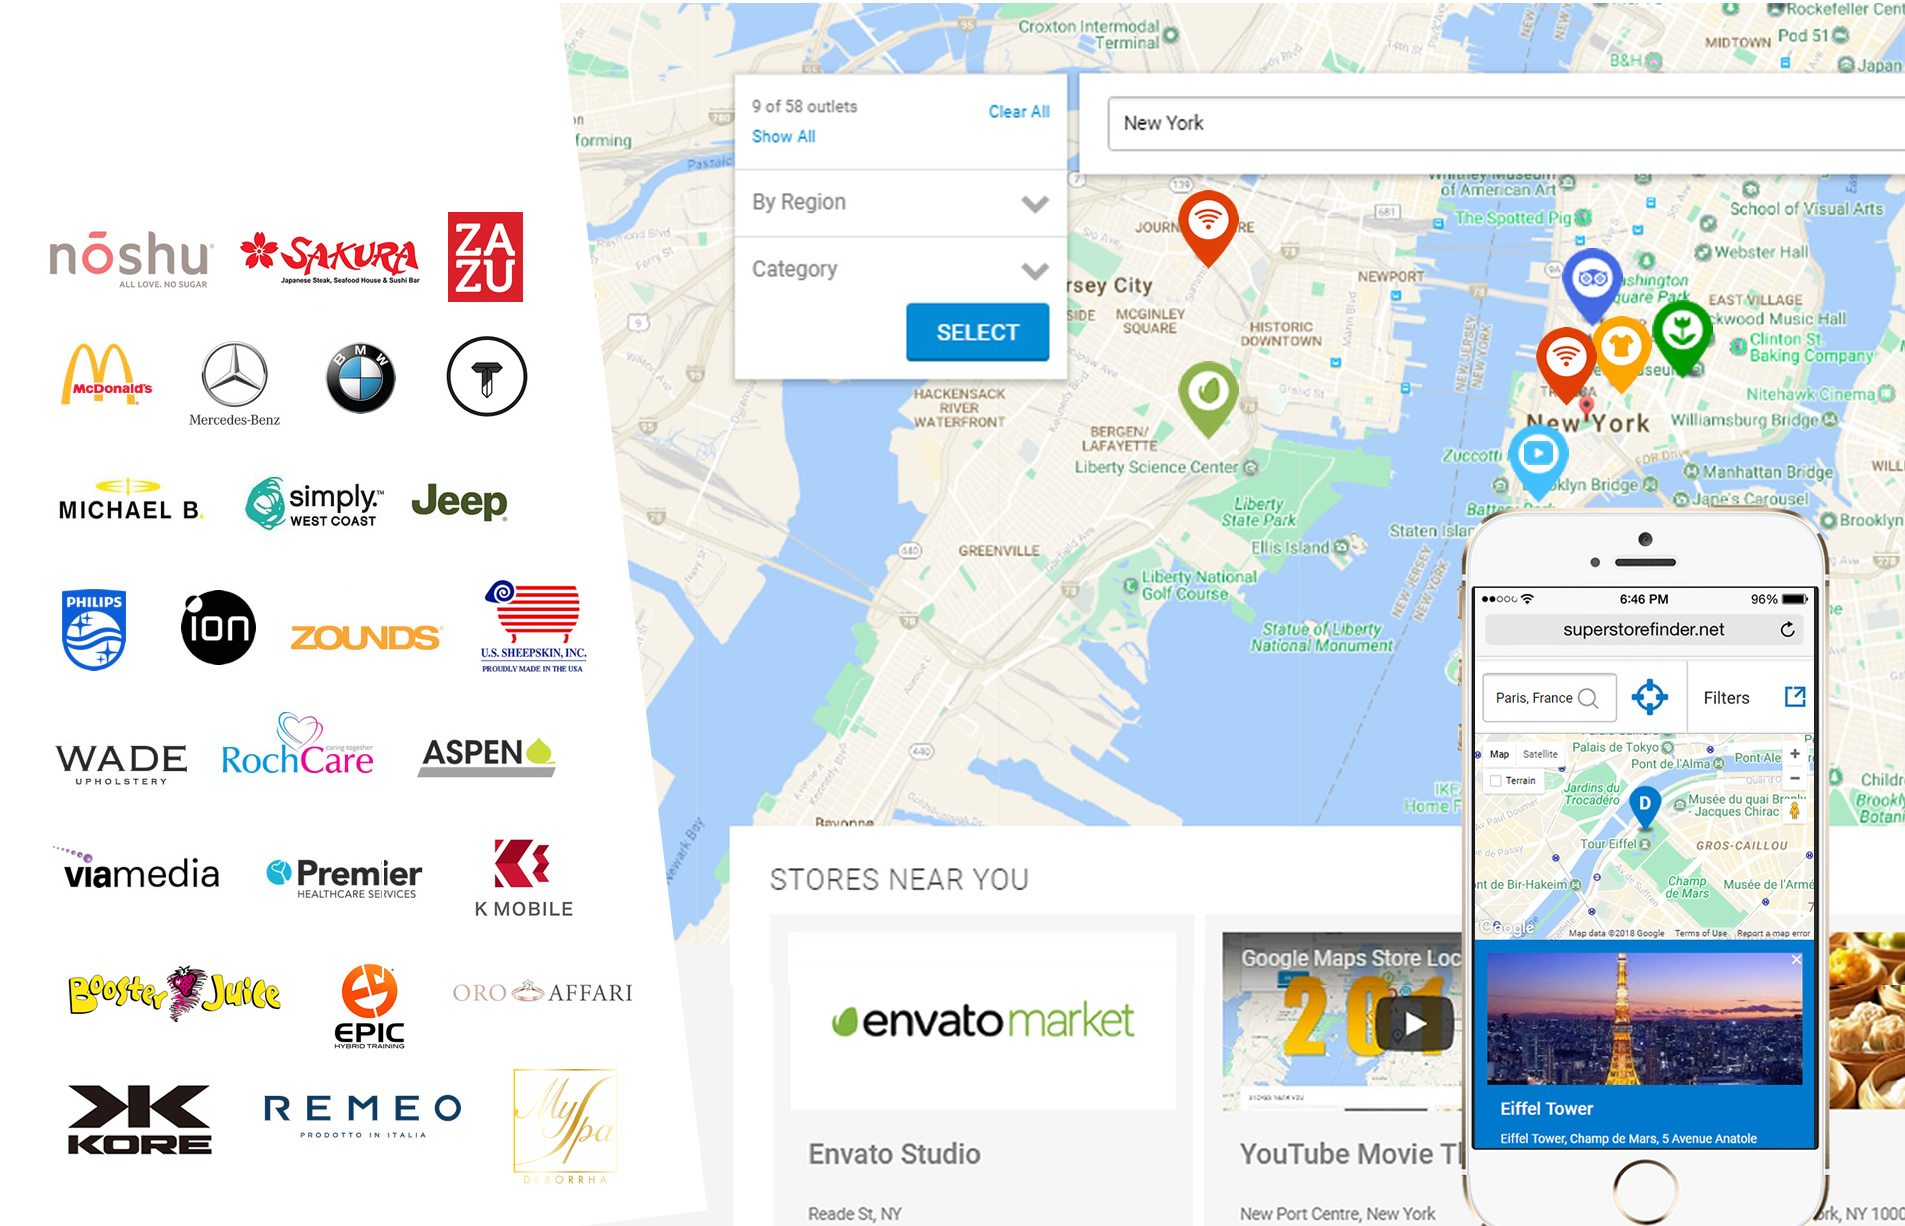 Super Store Finder - Get the Best Google Maps Store Locator